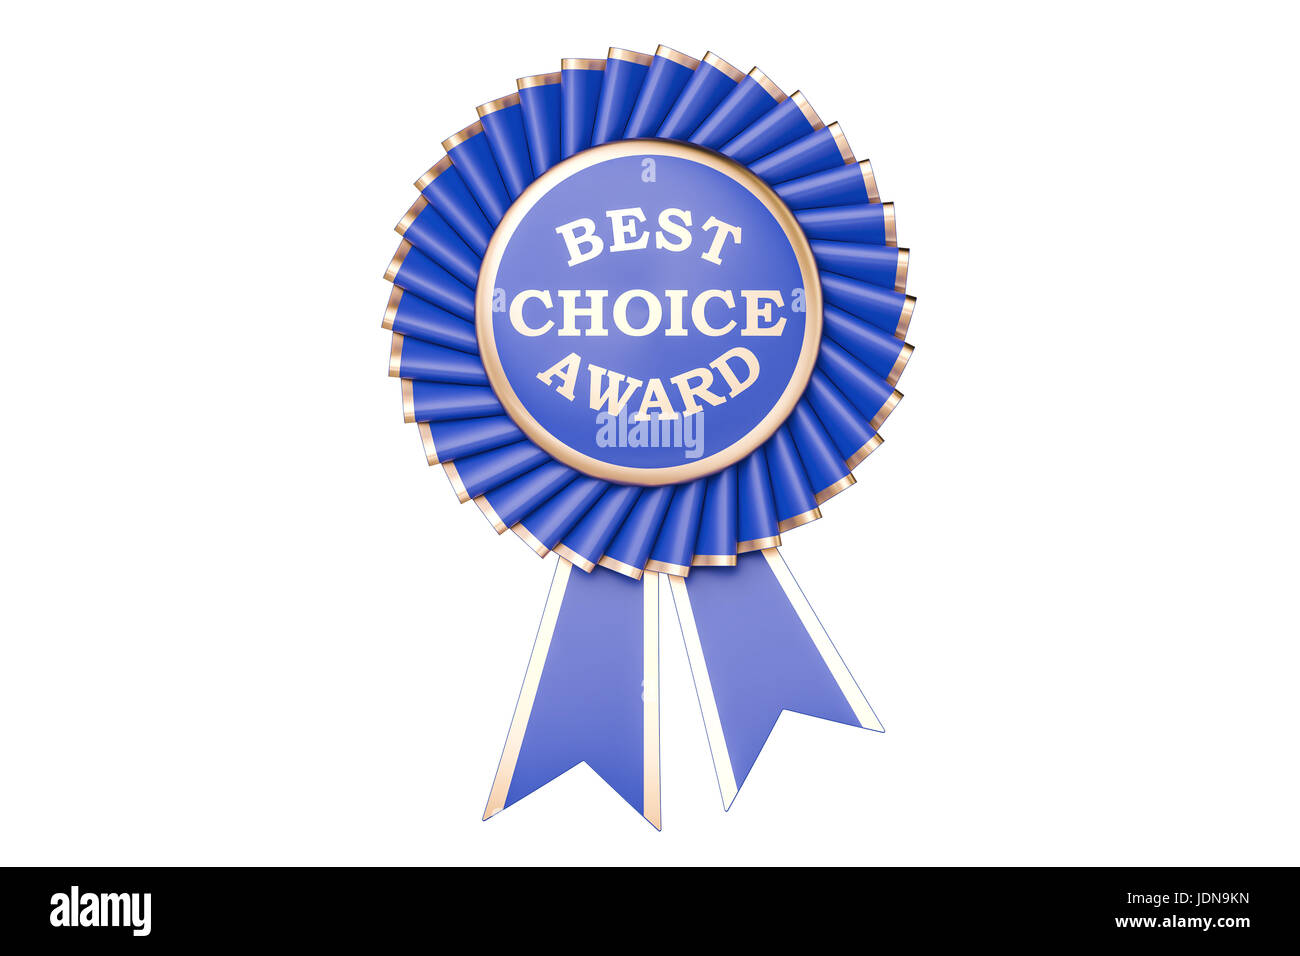 Best choice award, prize, medal or badge with ribbons. 3D rendering isolated on white background - Stock Image